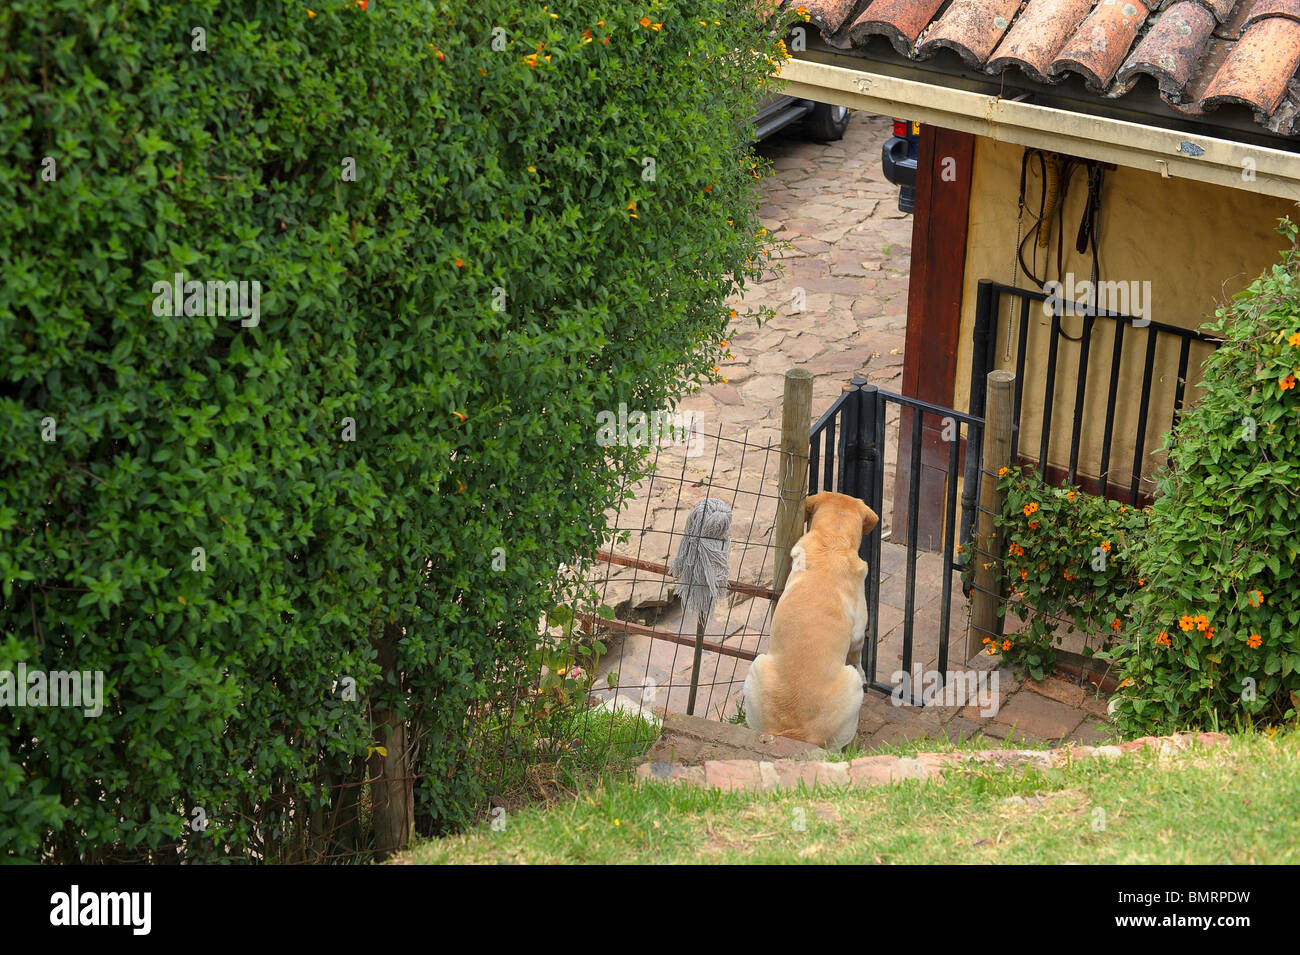 Dog Sitting In Enclosed Garden Area At Home In Bogota, Colombia